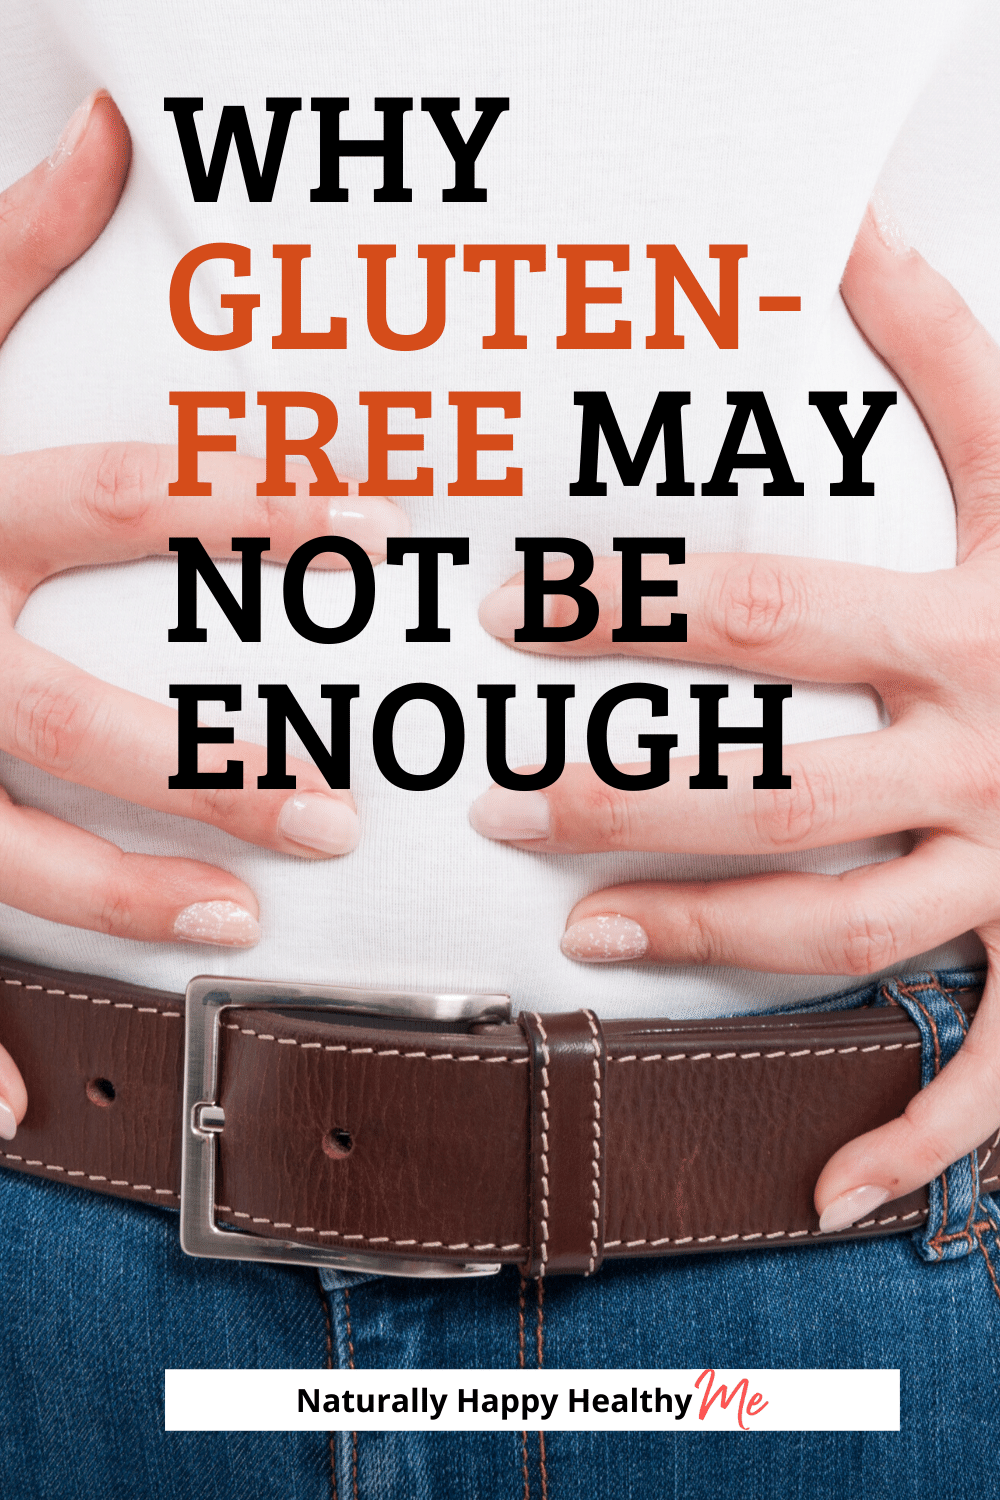 You may have a problem with more than just gluten. Gluten-free items still may contain wheat. Gluten / Wheat intolerance is becoming an accepted reality. Giving up wheat sucks, but maybe you don't need to.